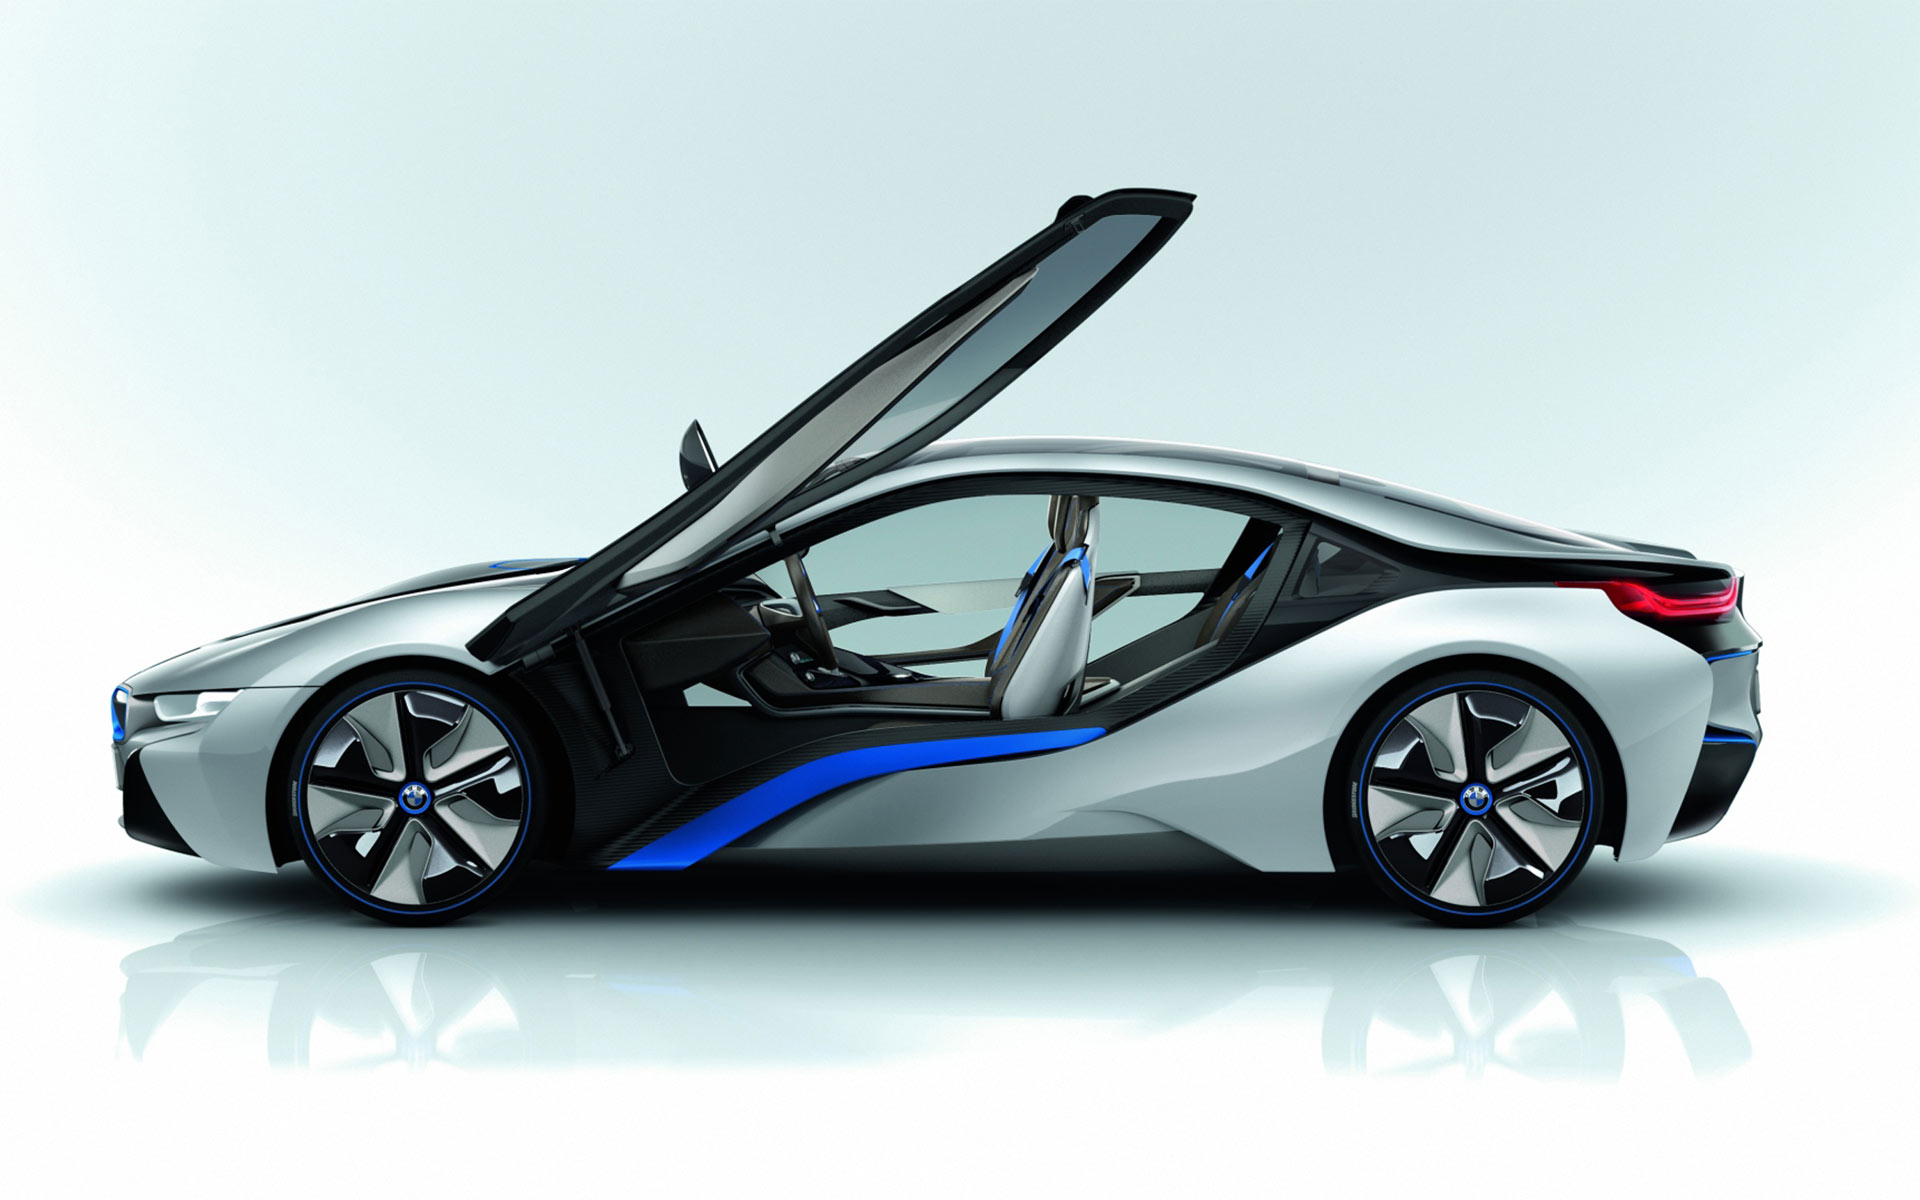 Bmw i8 28634 1920x1200 px hdwallsource bmw i8 28634 sciox Image collections